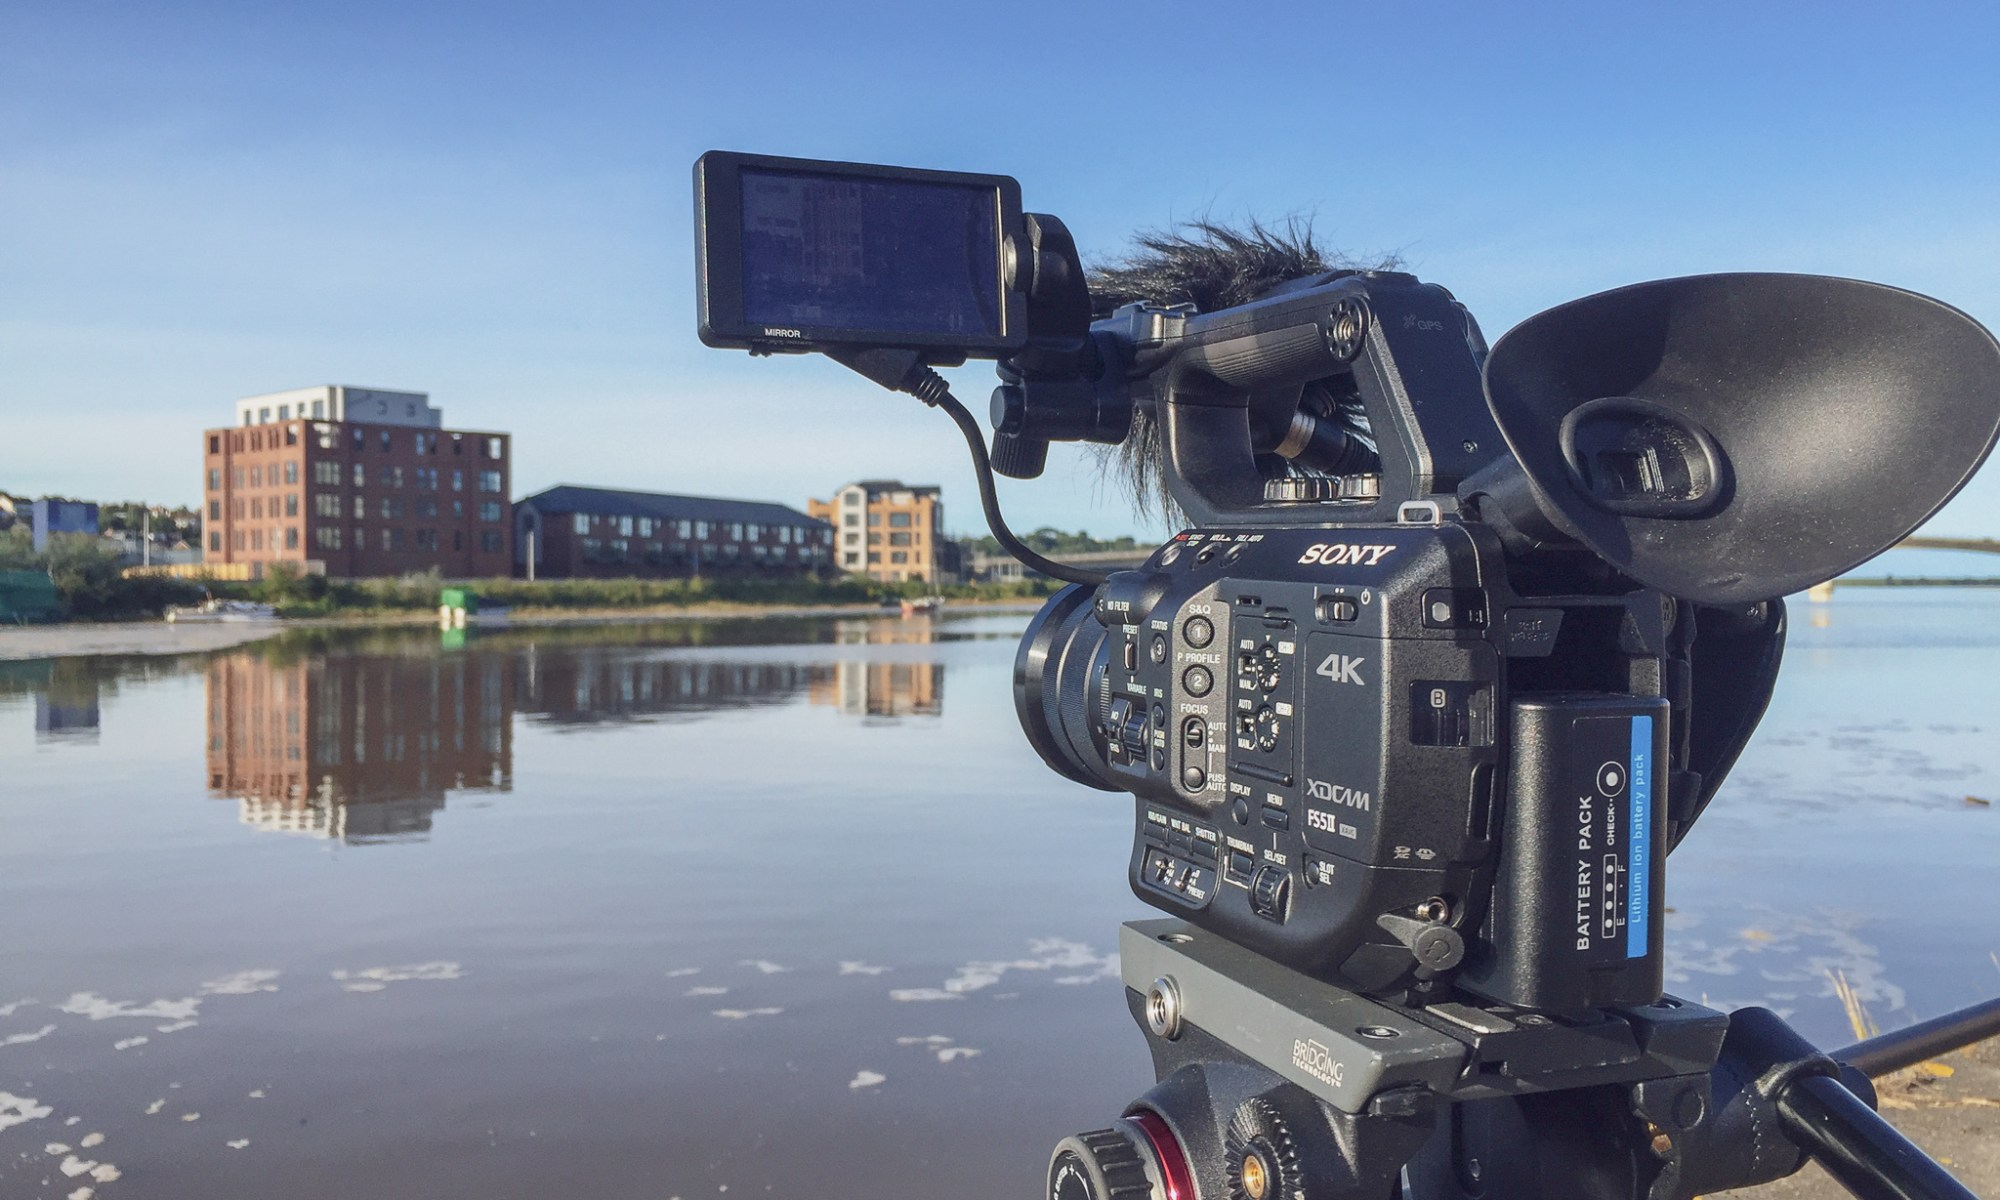 We film on professional Sony broadcast cameras like this one pictured here by the River Taw in Barnstaple